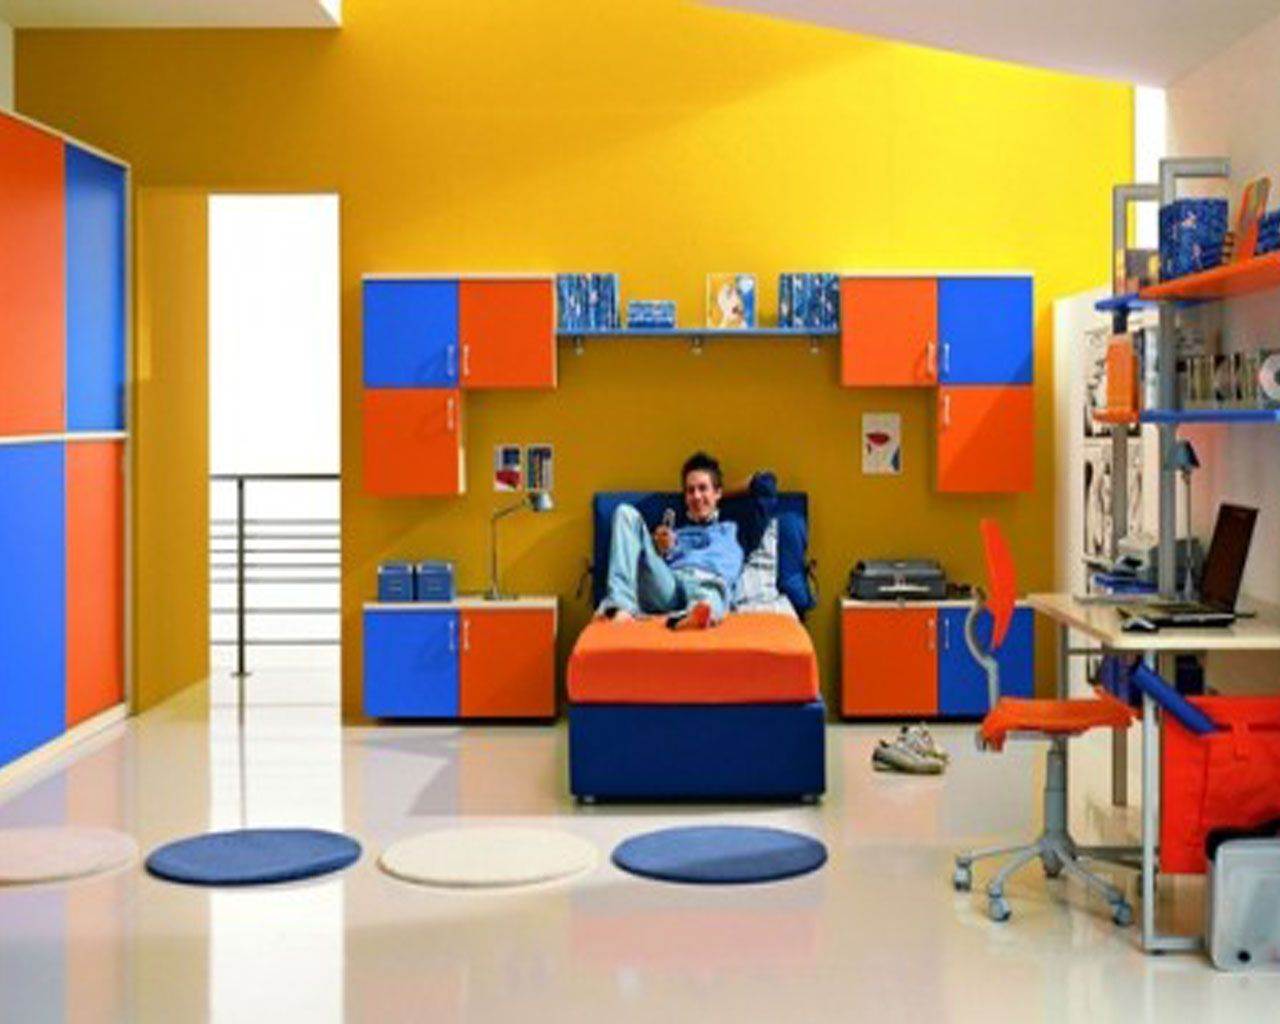 Bedroom interior for boys - Boys Bedroom Idea With Yellow Wall Paint Color And Orange Blue Cabinets And